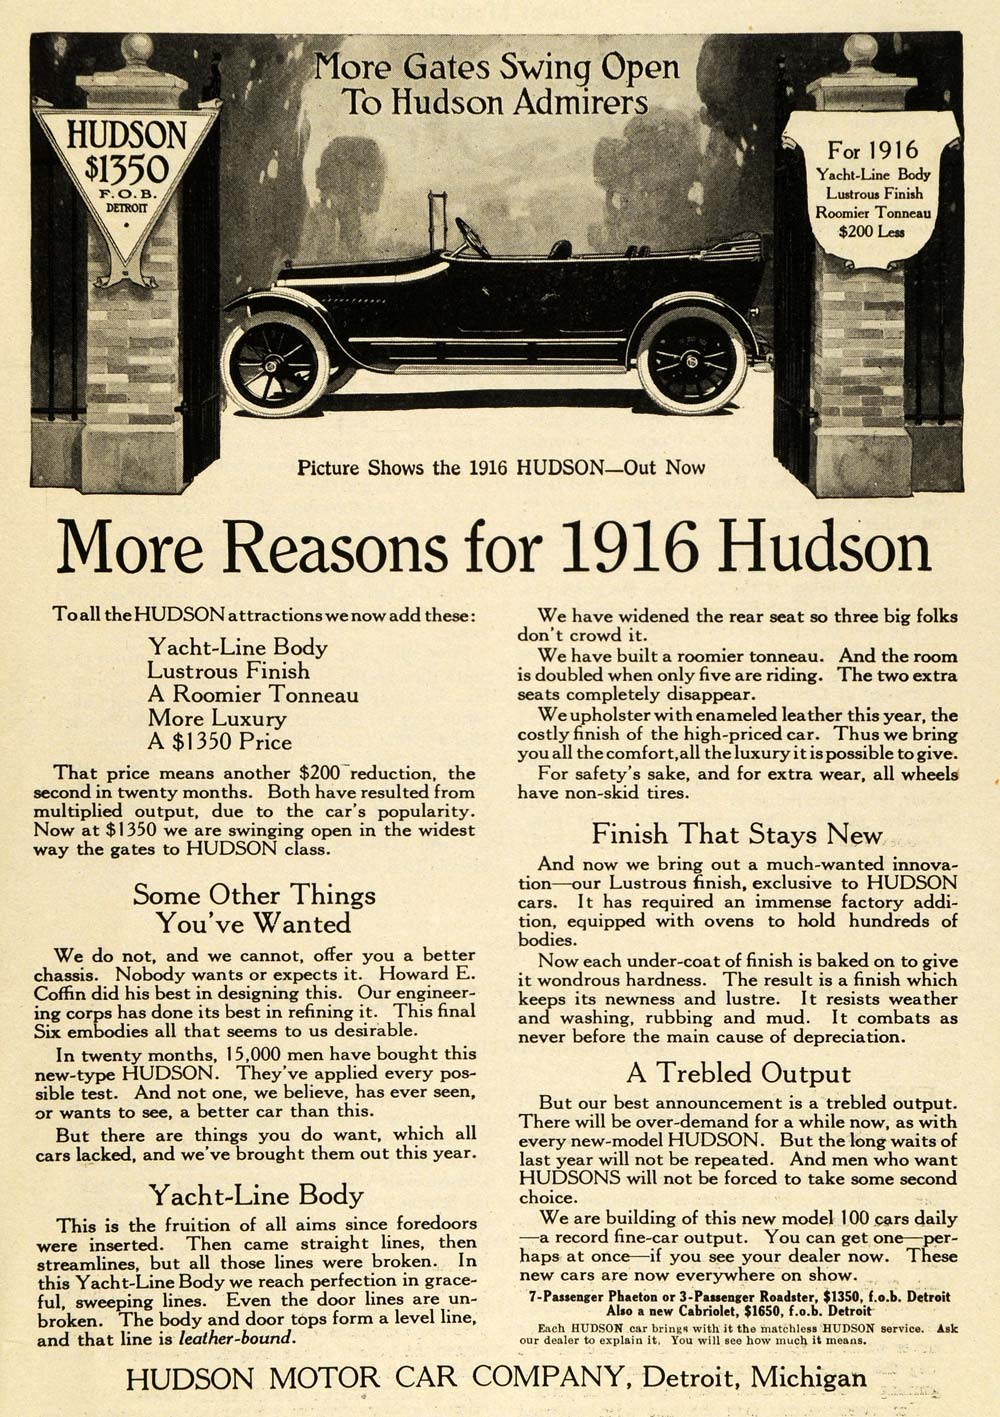 1915 Ad 1916 Hudson Antique Automobile Tonneau Specifications Yacht Line PM3